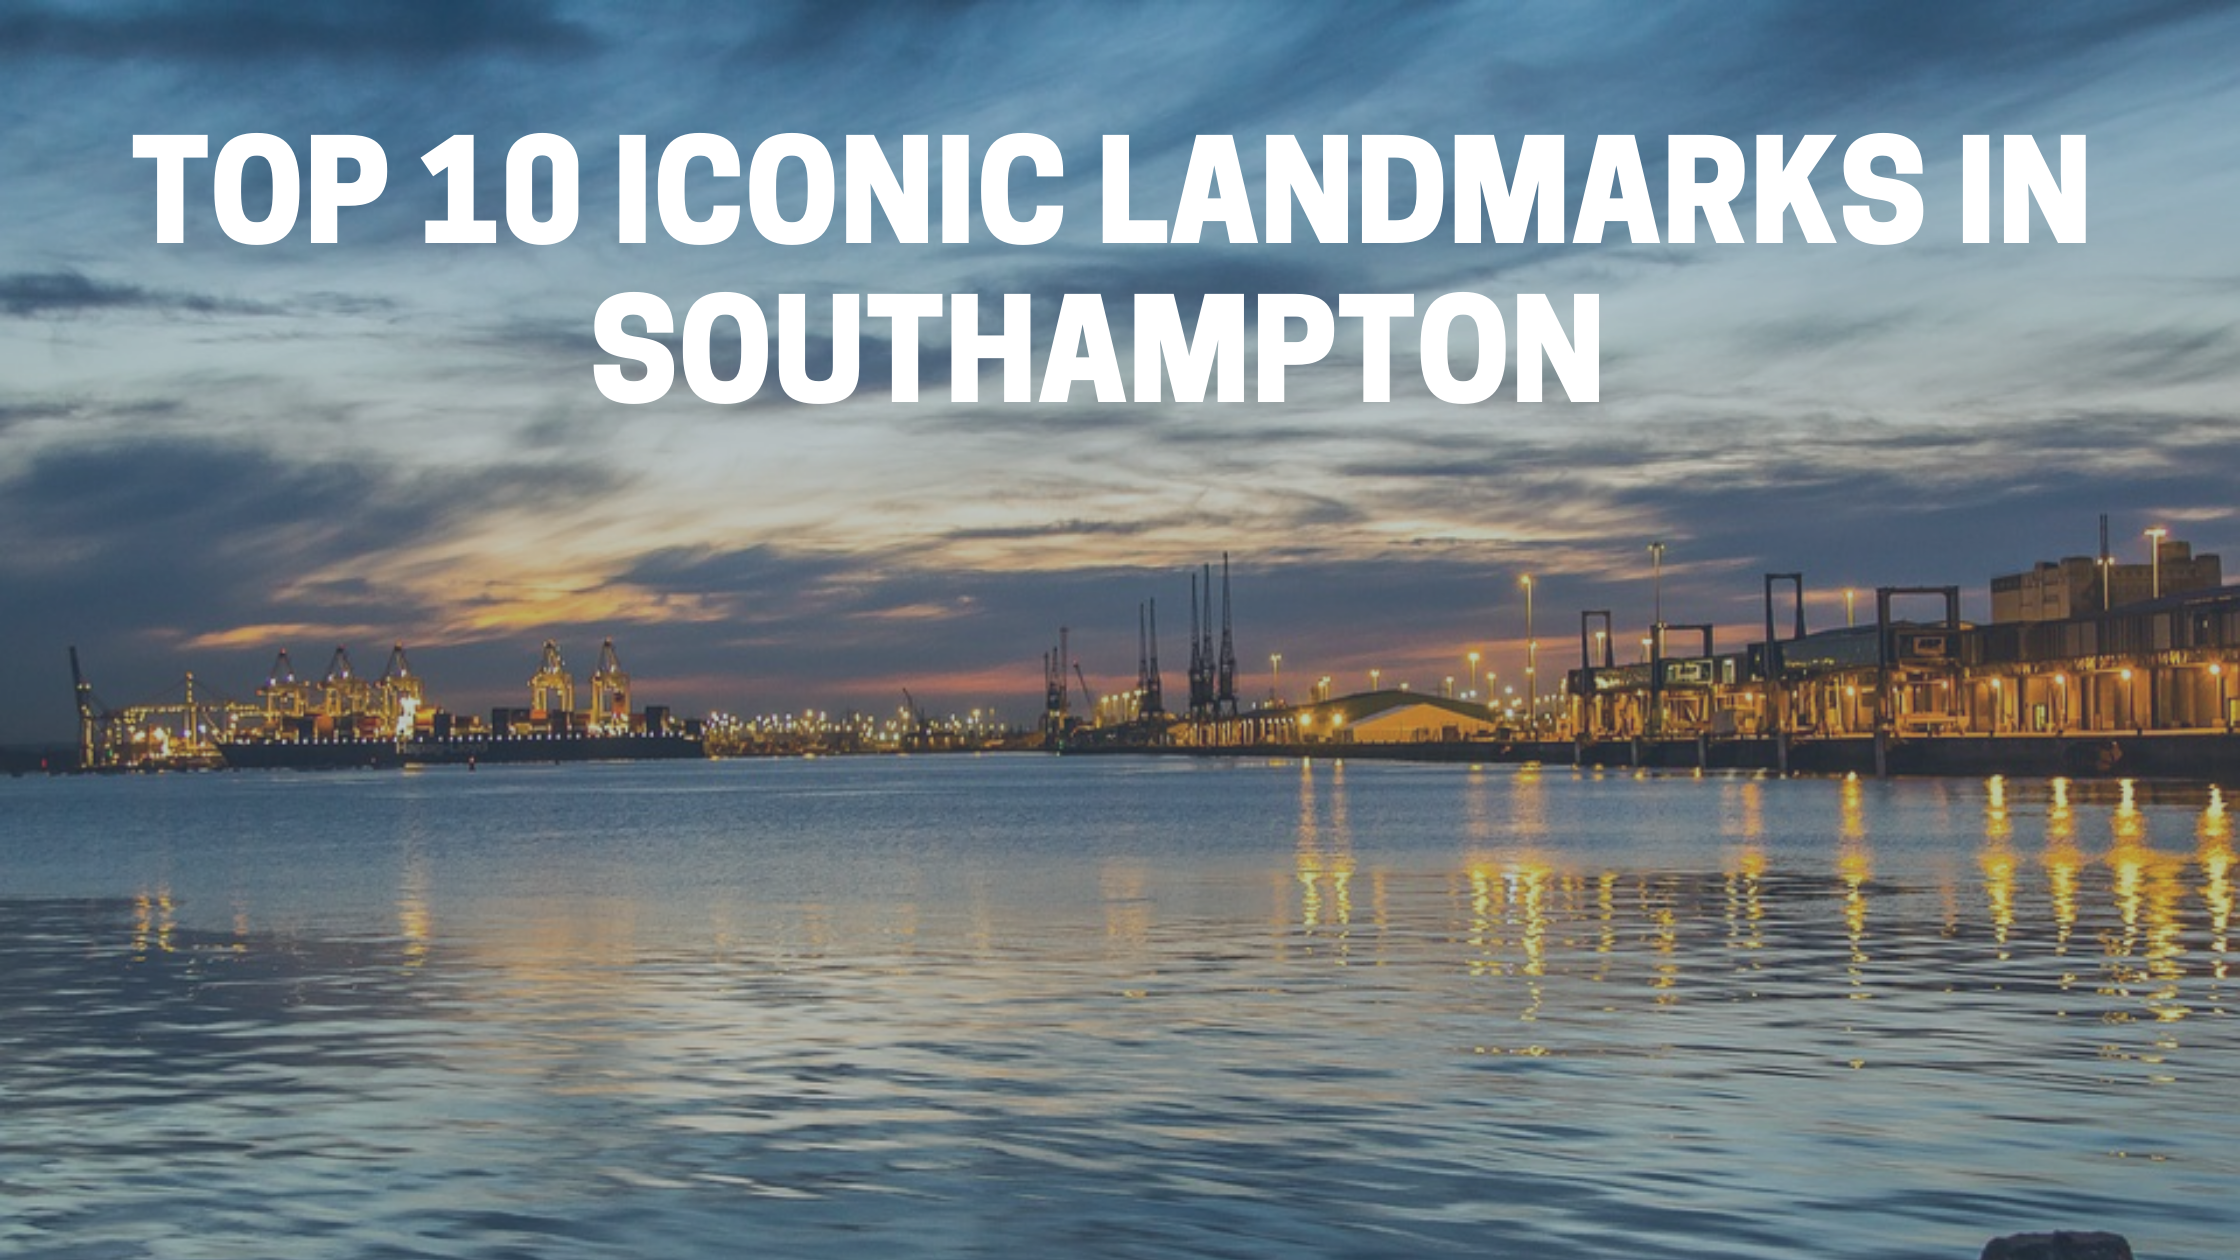 Top 10 Iconic Landmarks In Southampton that you must see